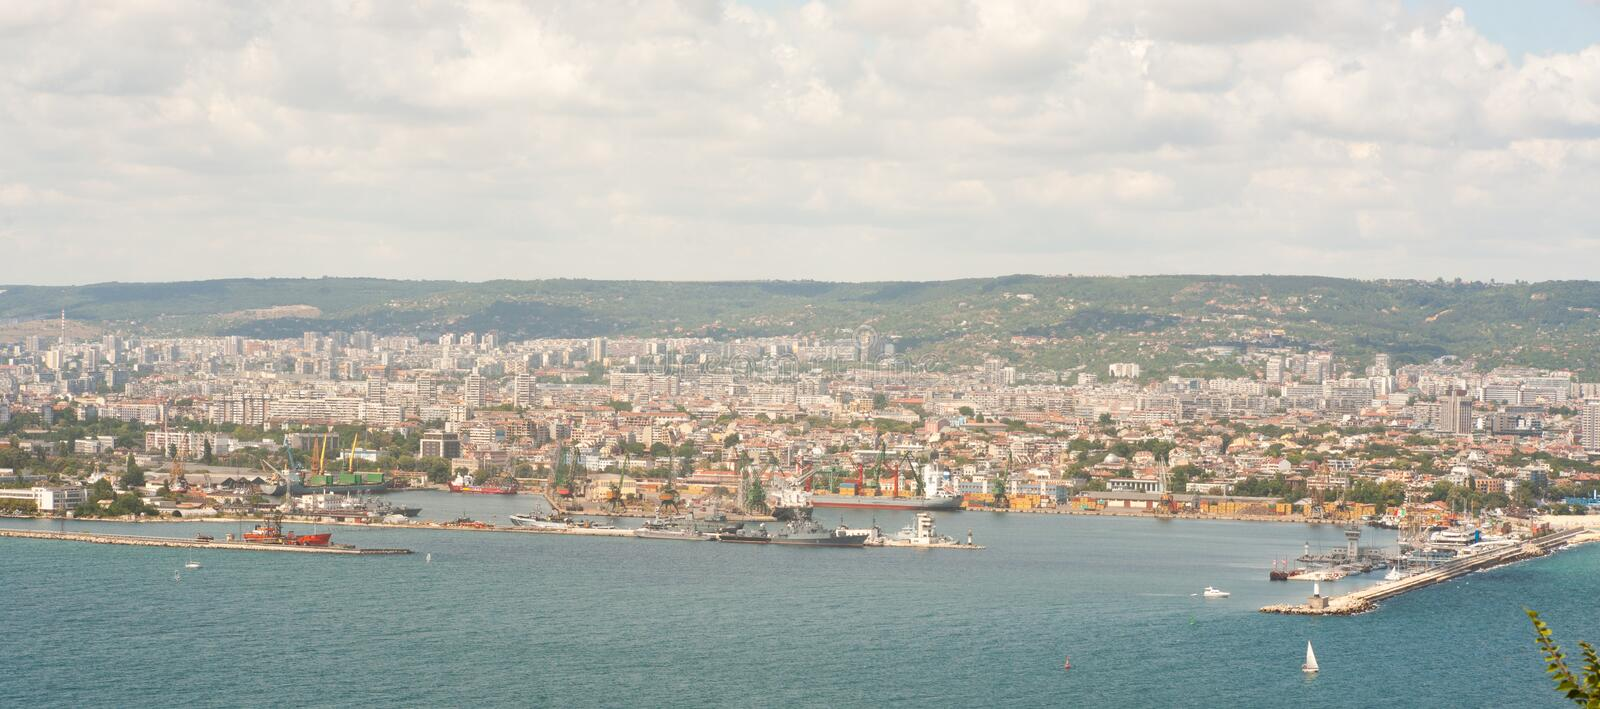 Seaport in the Bay of Varna stock photography